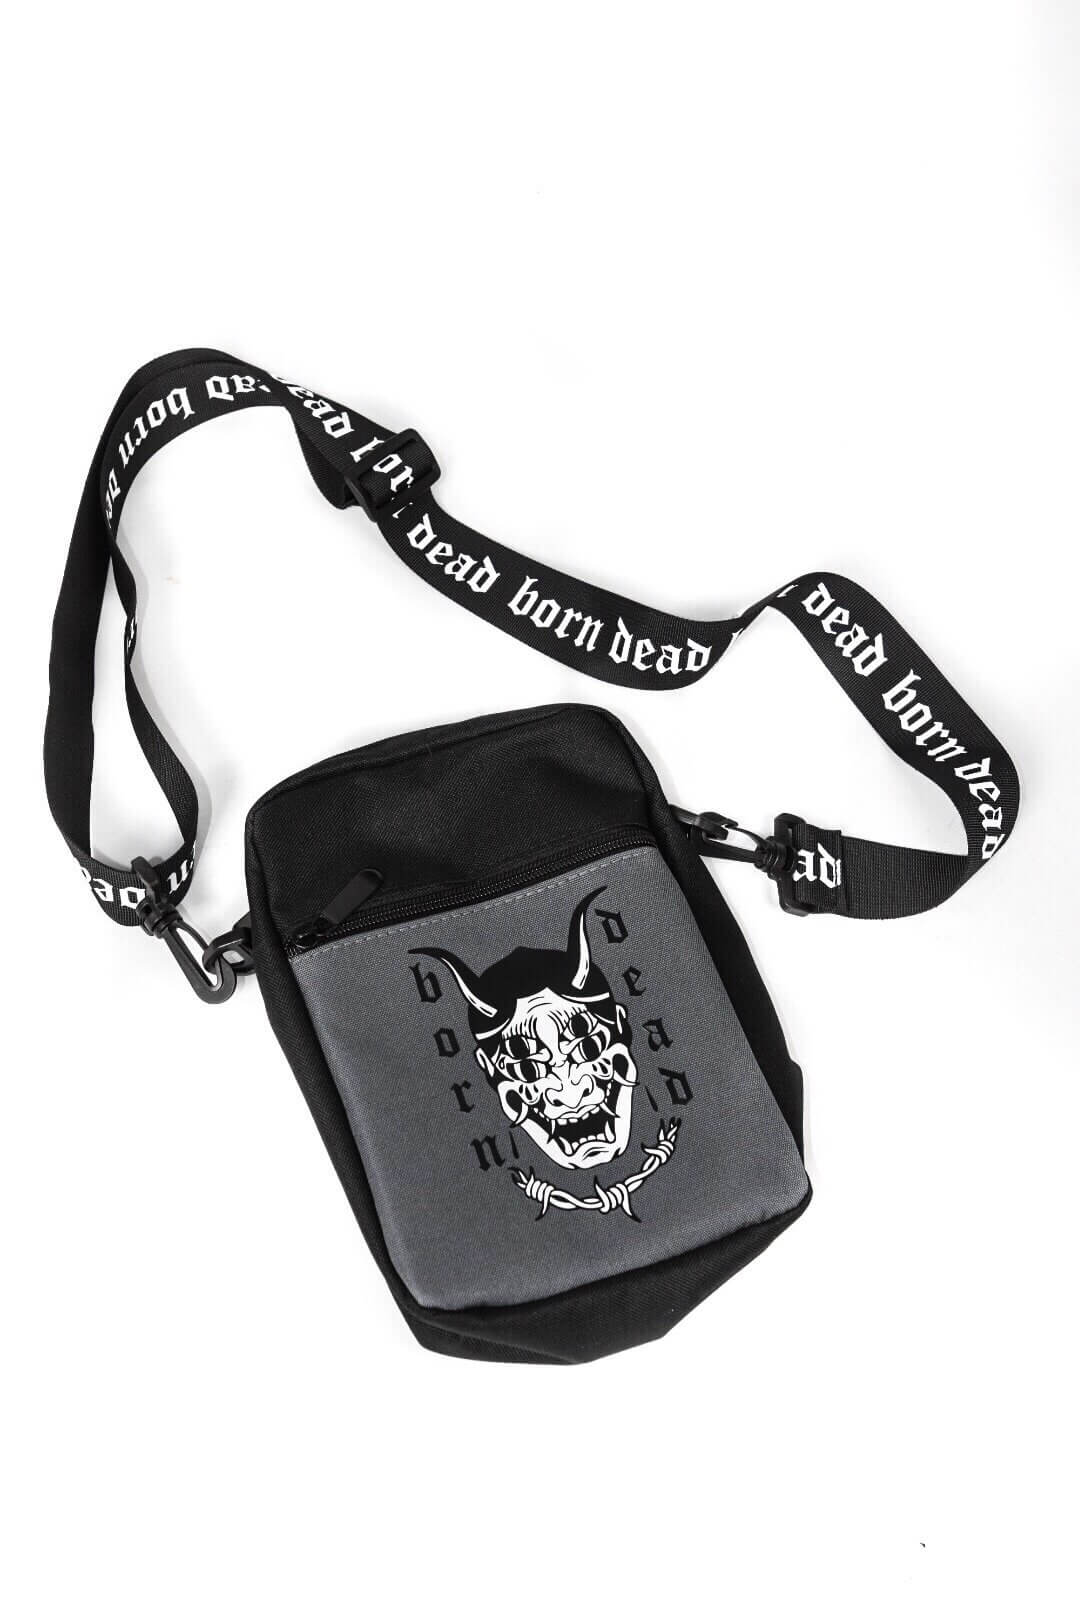 Born Dead Flight bag